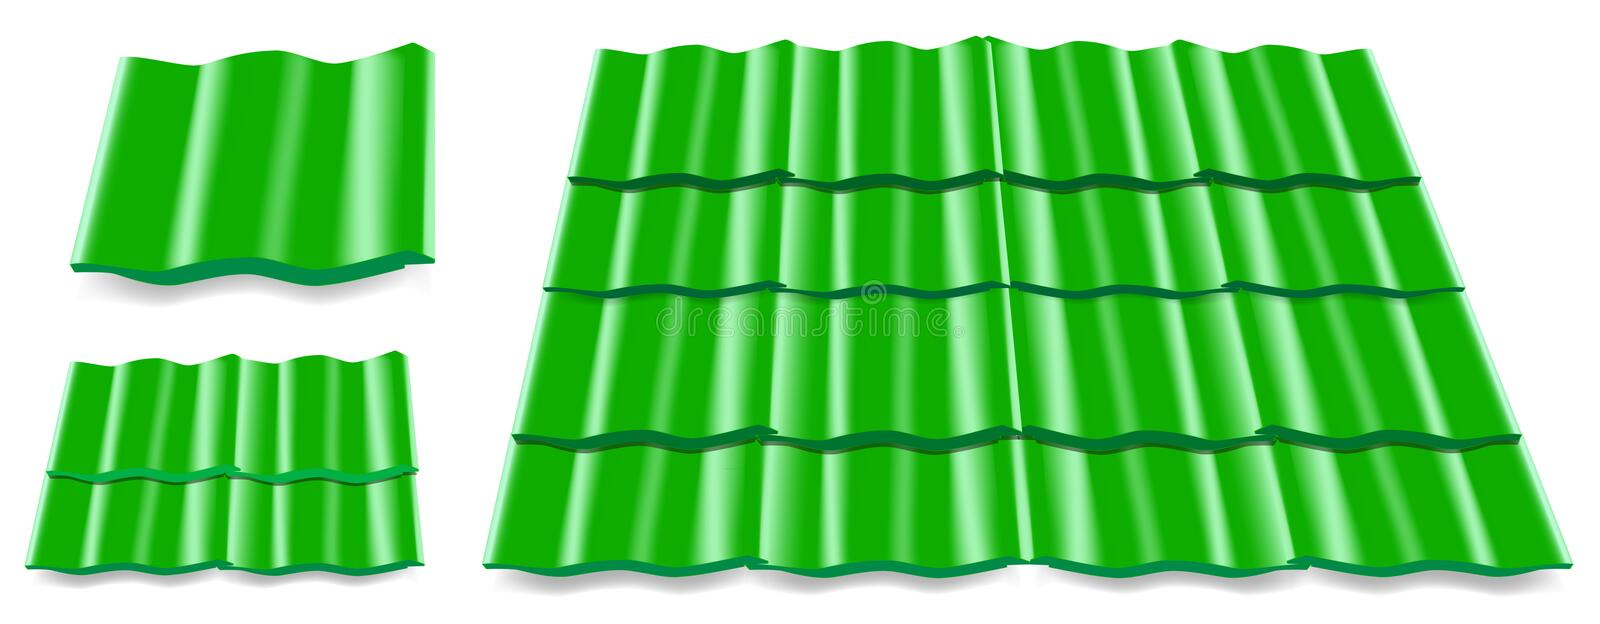 Download Roof Tile Royalty Free Stock Photo - Image: 18366265